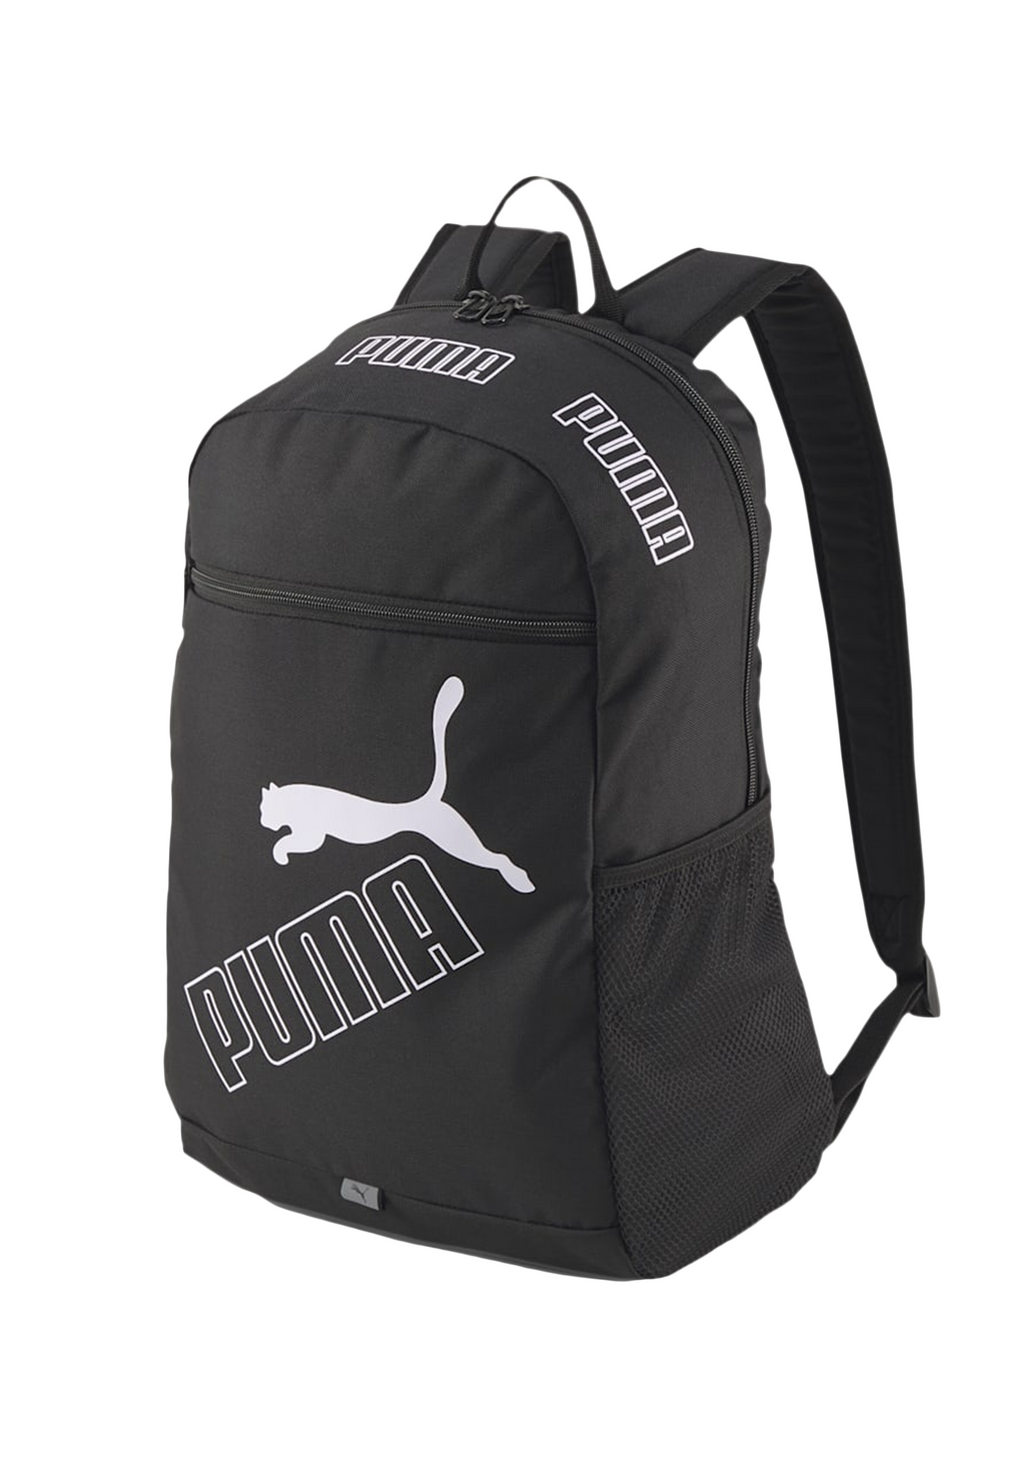 PUMA PHASE BACKPACK II <br> 07729501